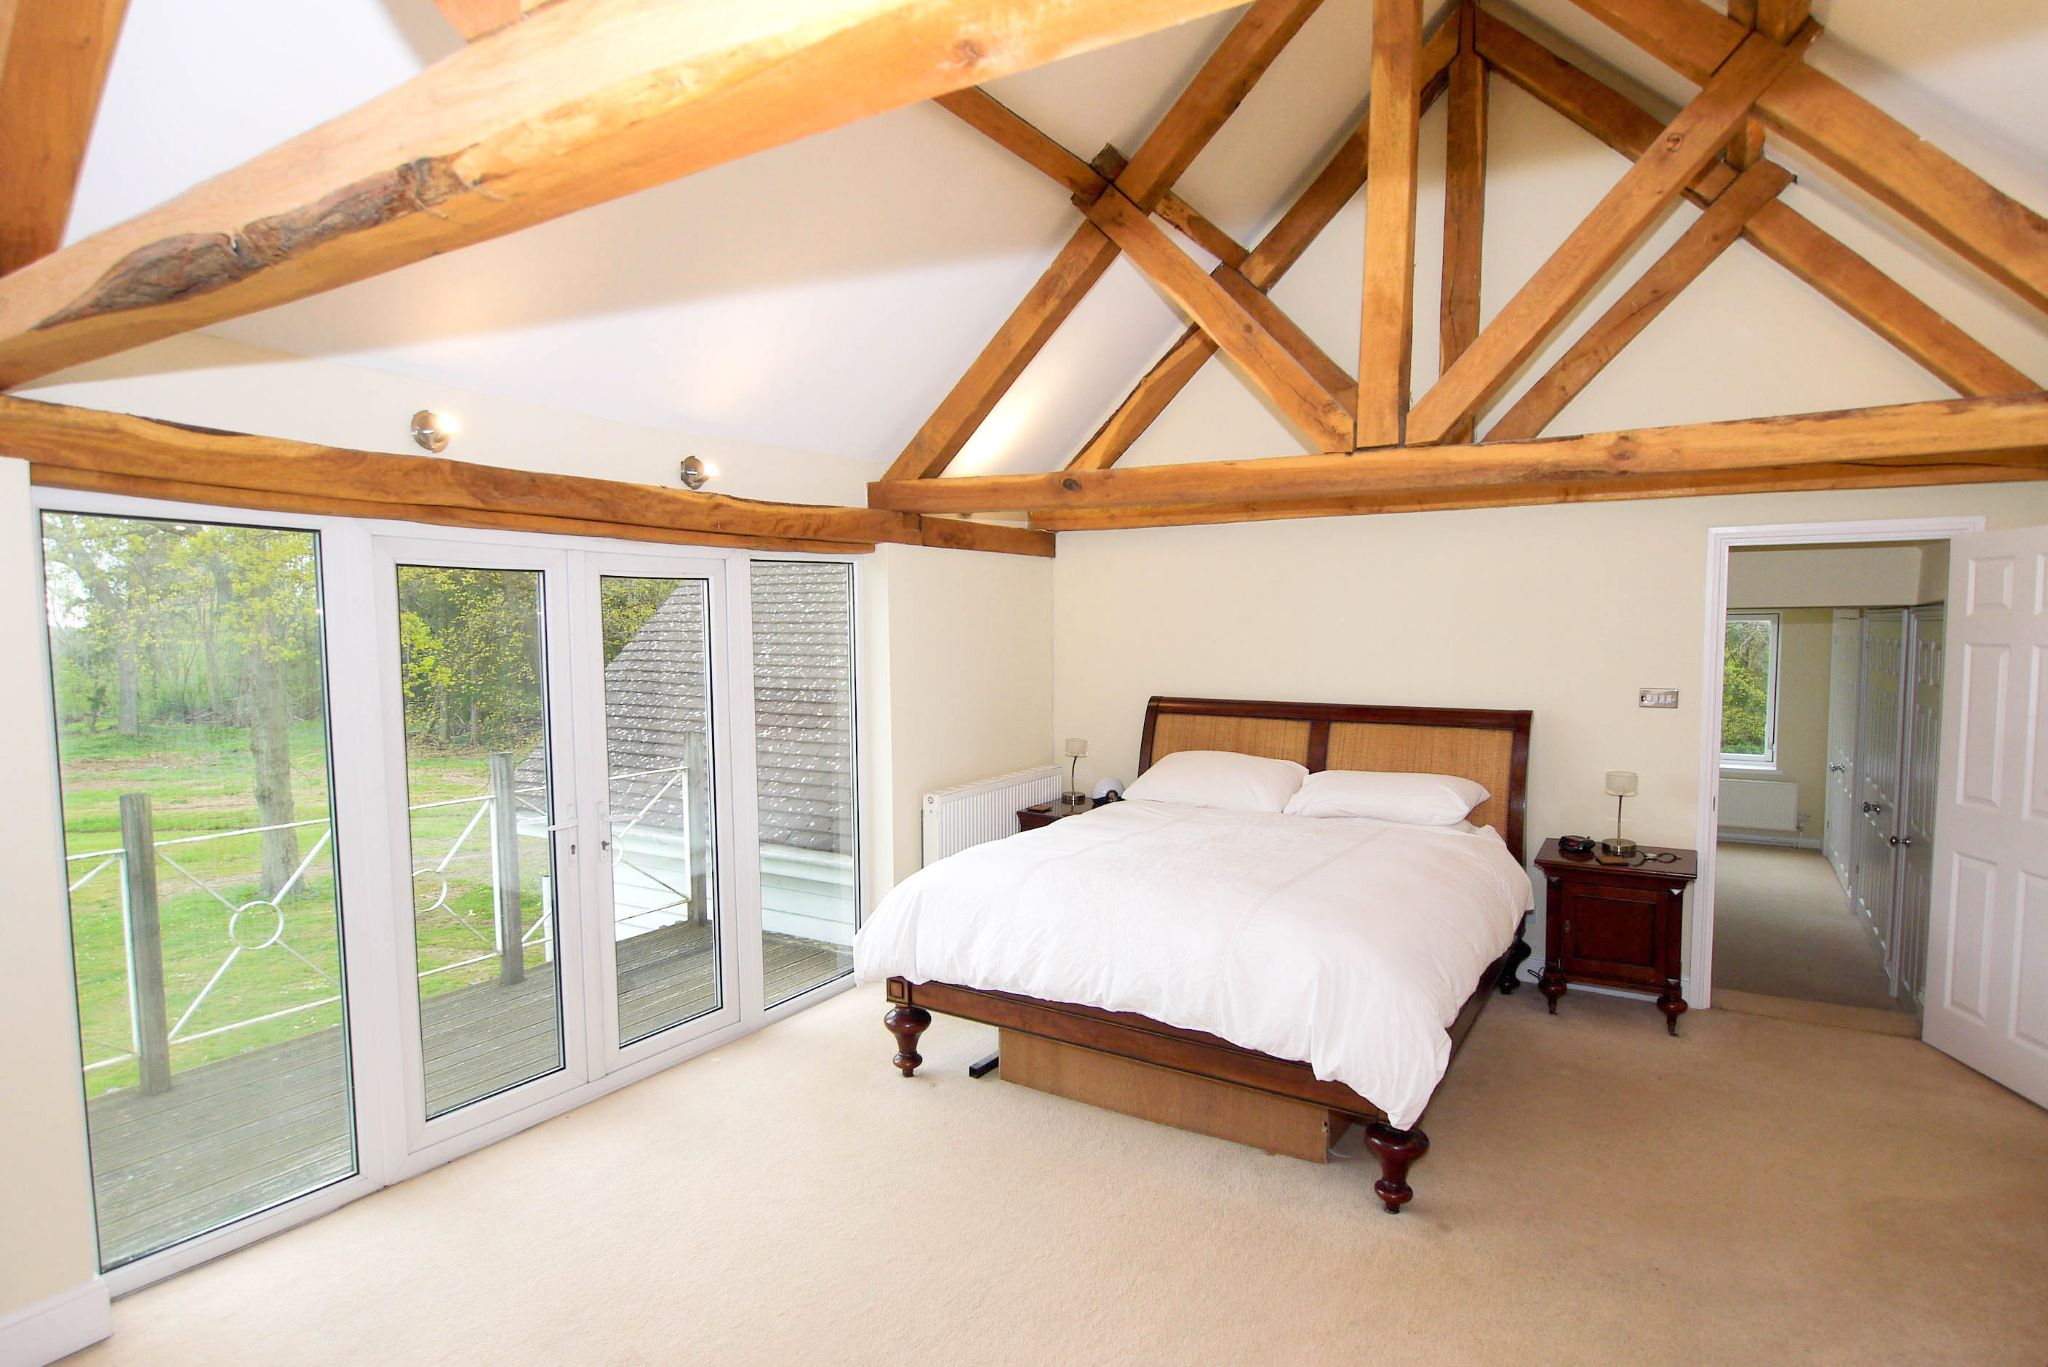 6 bedroom detached house For Sale in Sevenoaks - Photograph 8